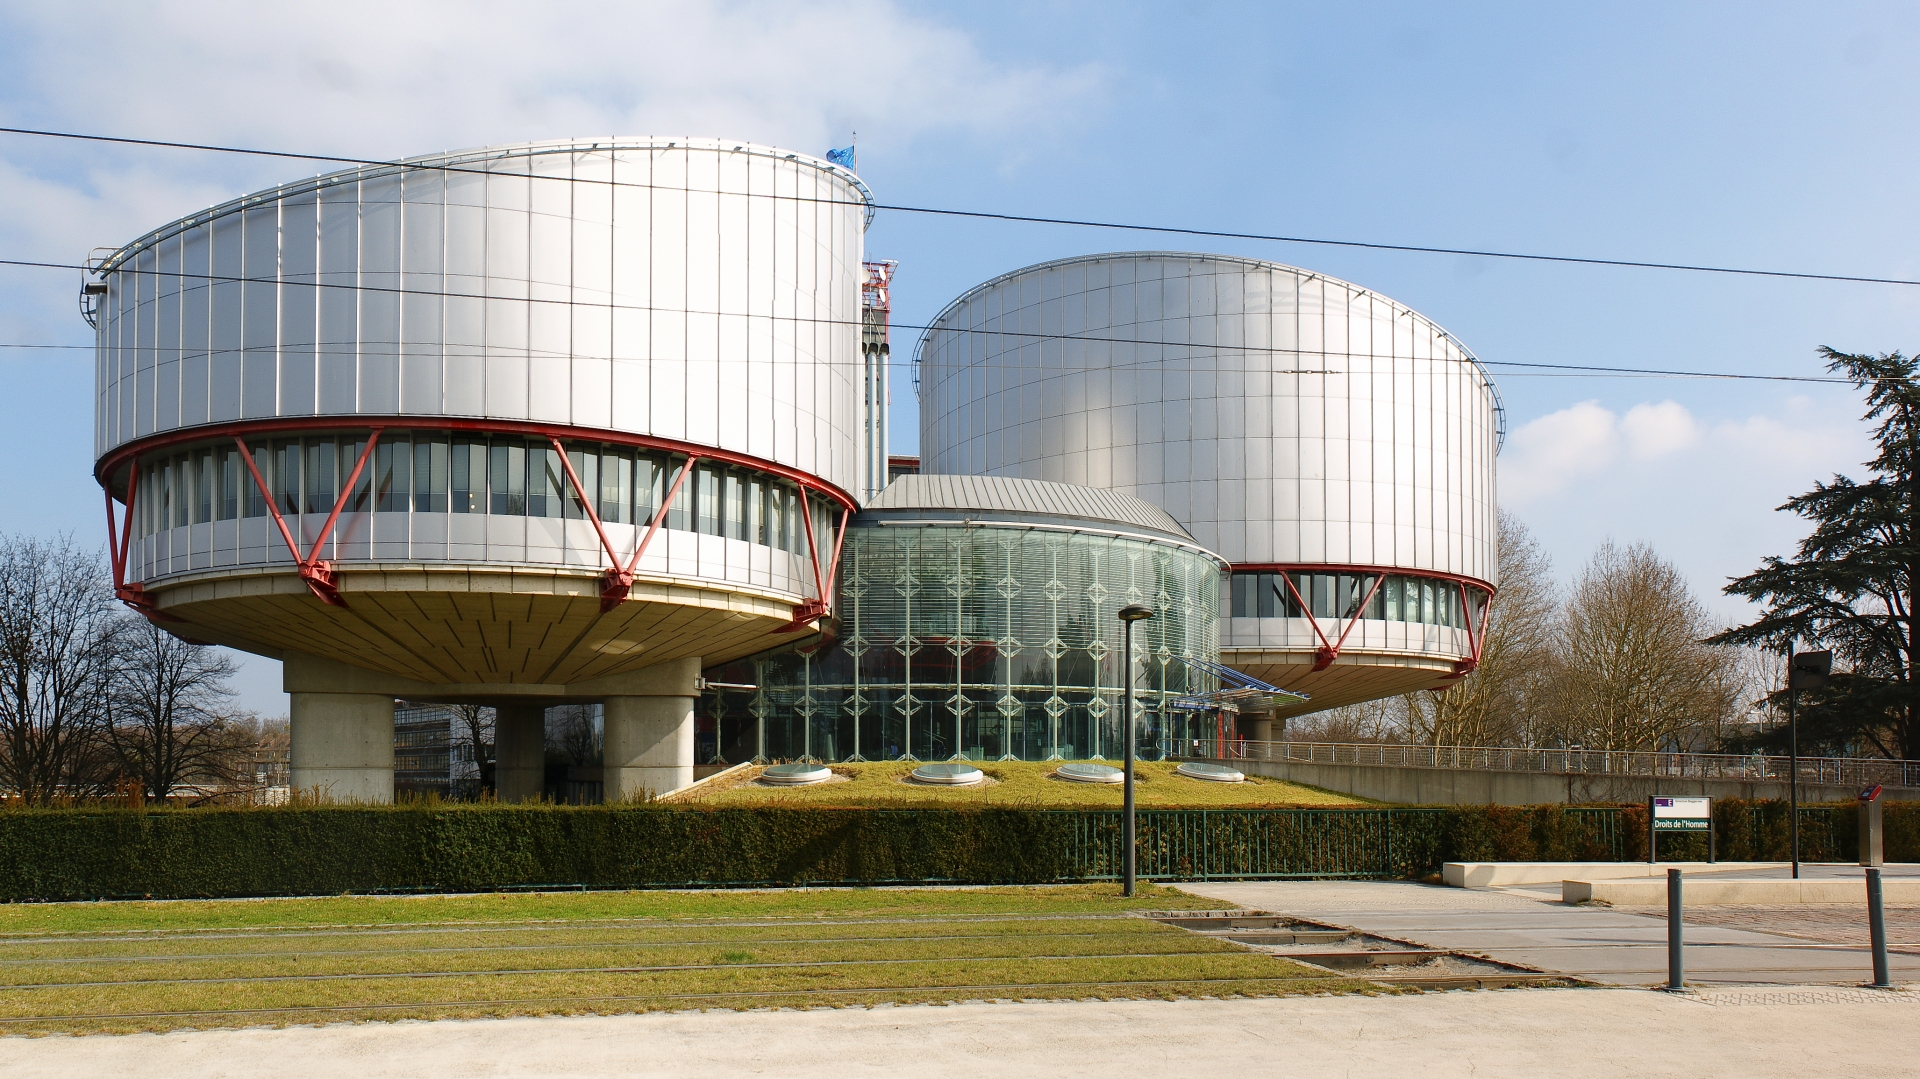 European Court delivers judgment in the case of Dadayan v. Armenia